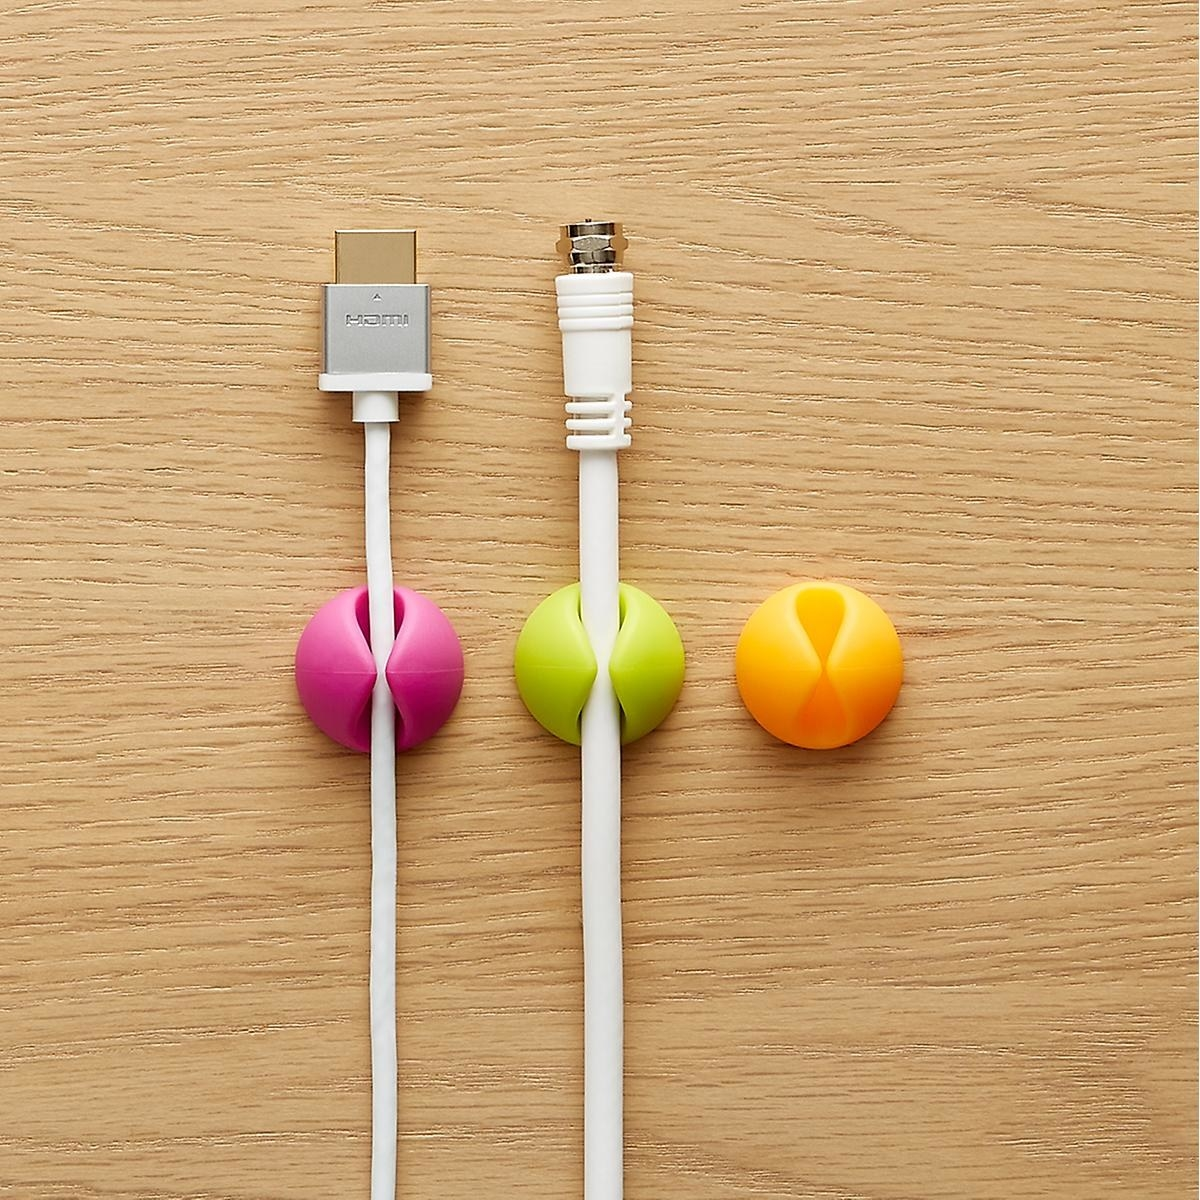 A set of three multi-colored clips in pink, lime green, and orange, two of which are securing cables